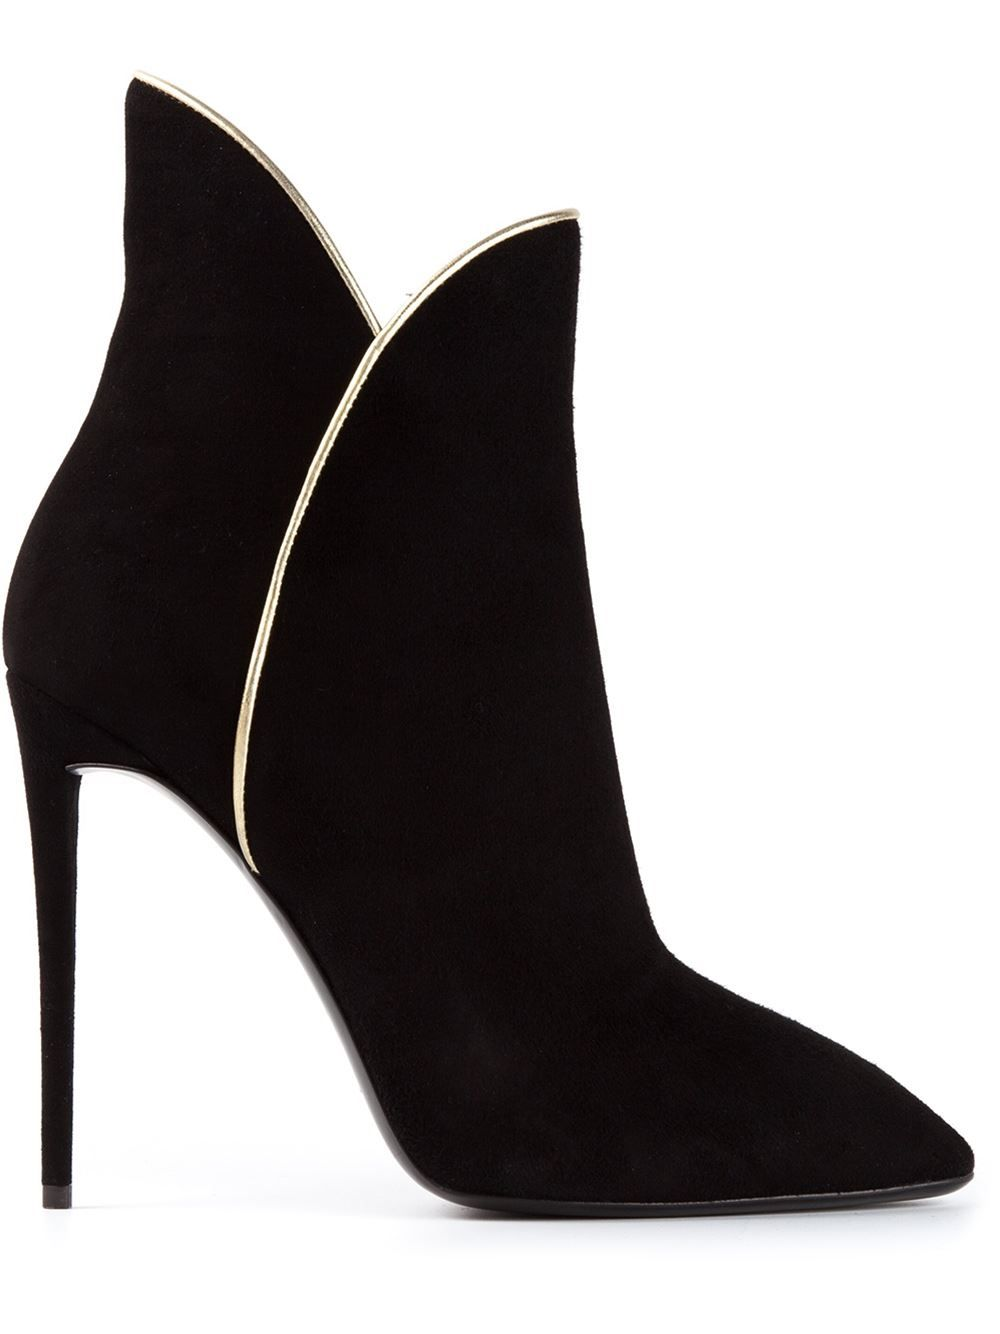 Shop pointed toe boots from Giuseppe Zanotti Design in our fashion  directory.